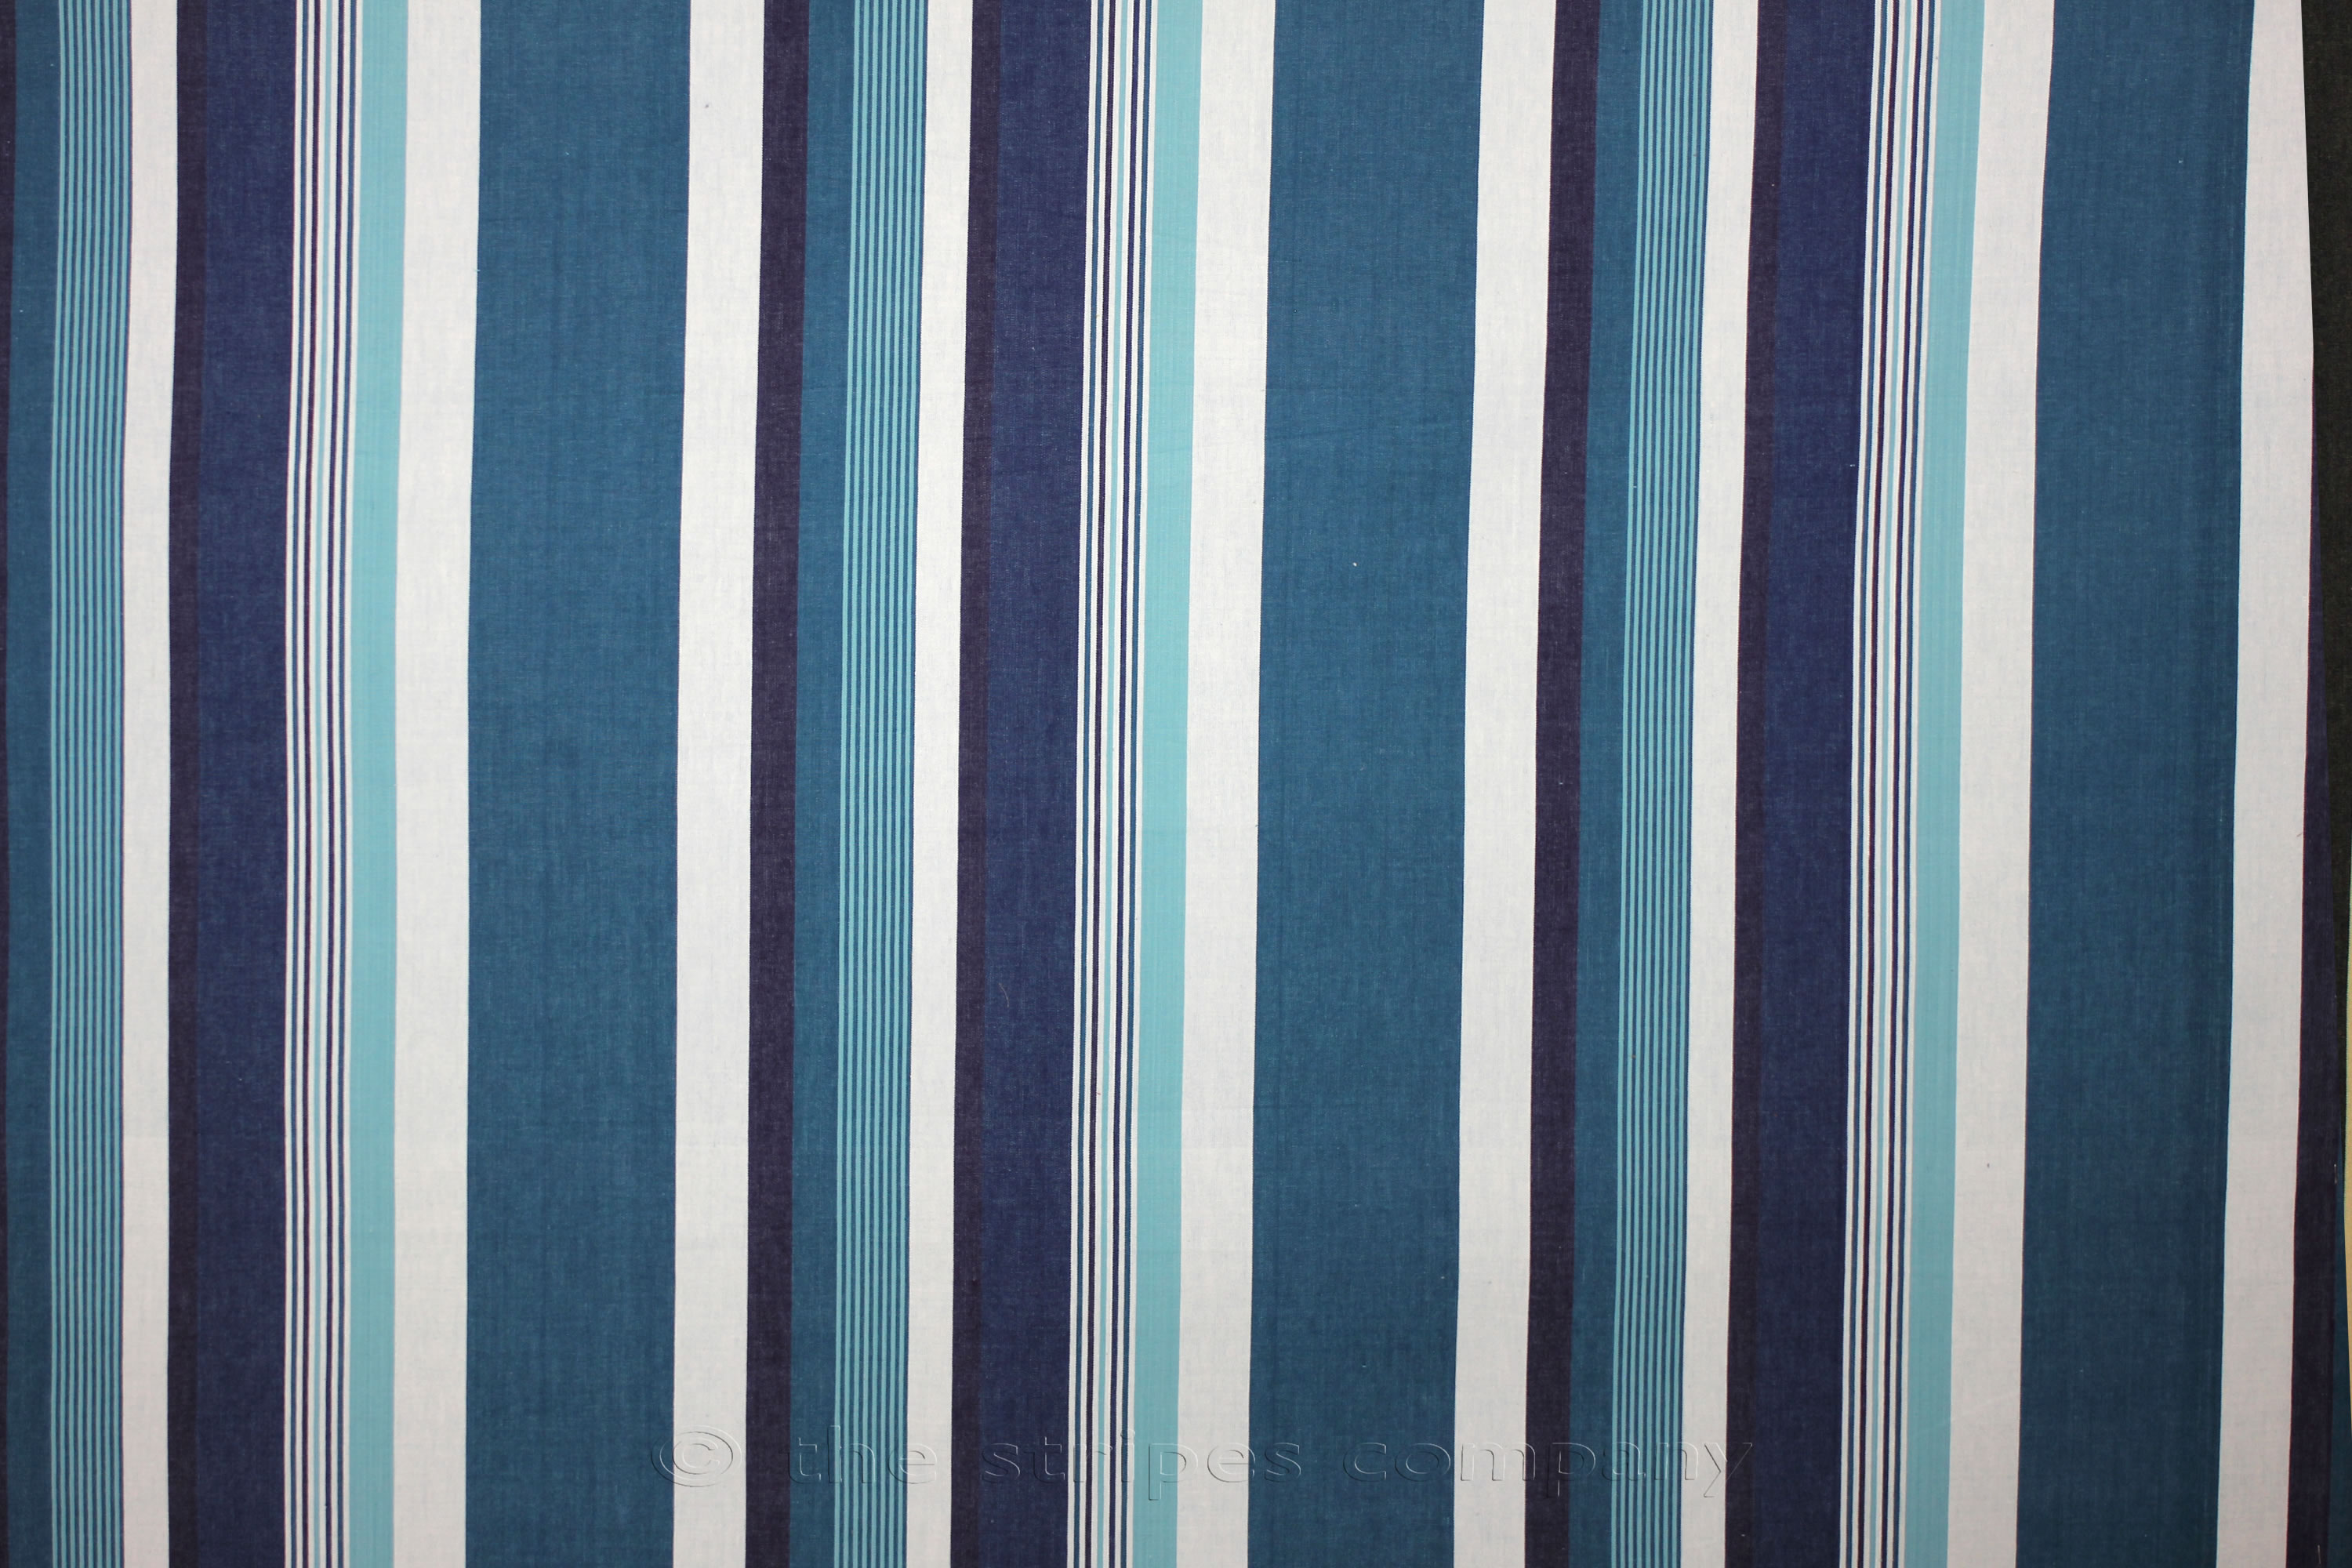 Curtains roman blinds and soft furnishings 100 yarn dyed cotton in